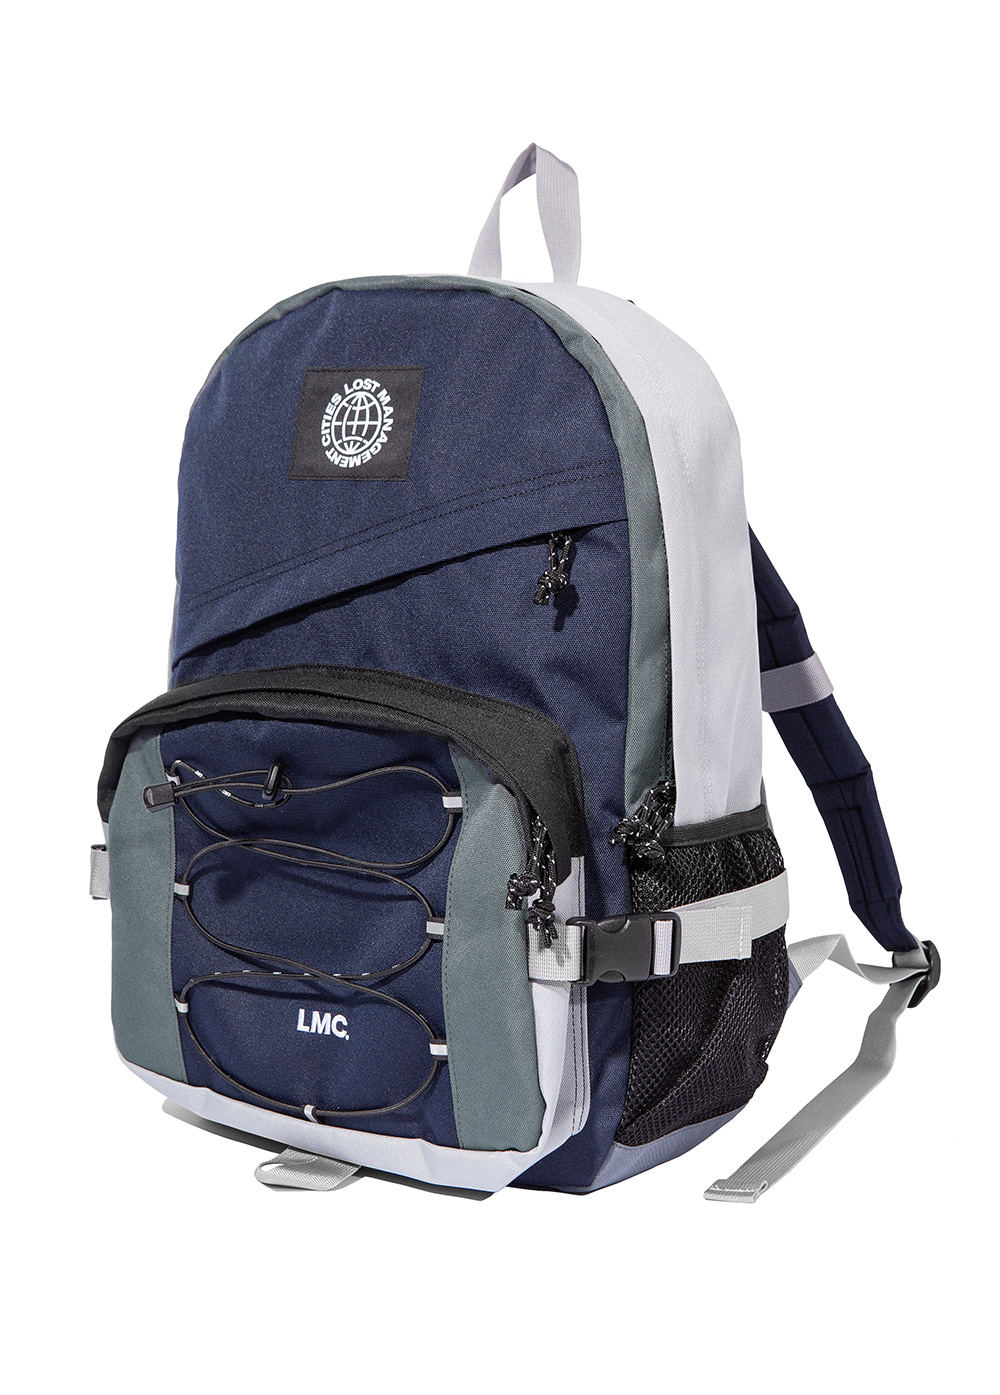 LMC TECHNICAL BACKPACK multi